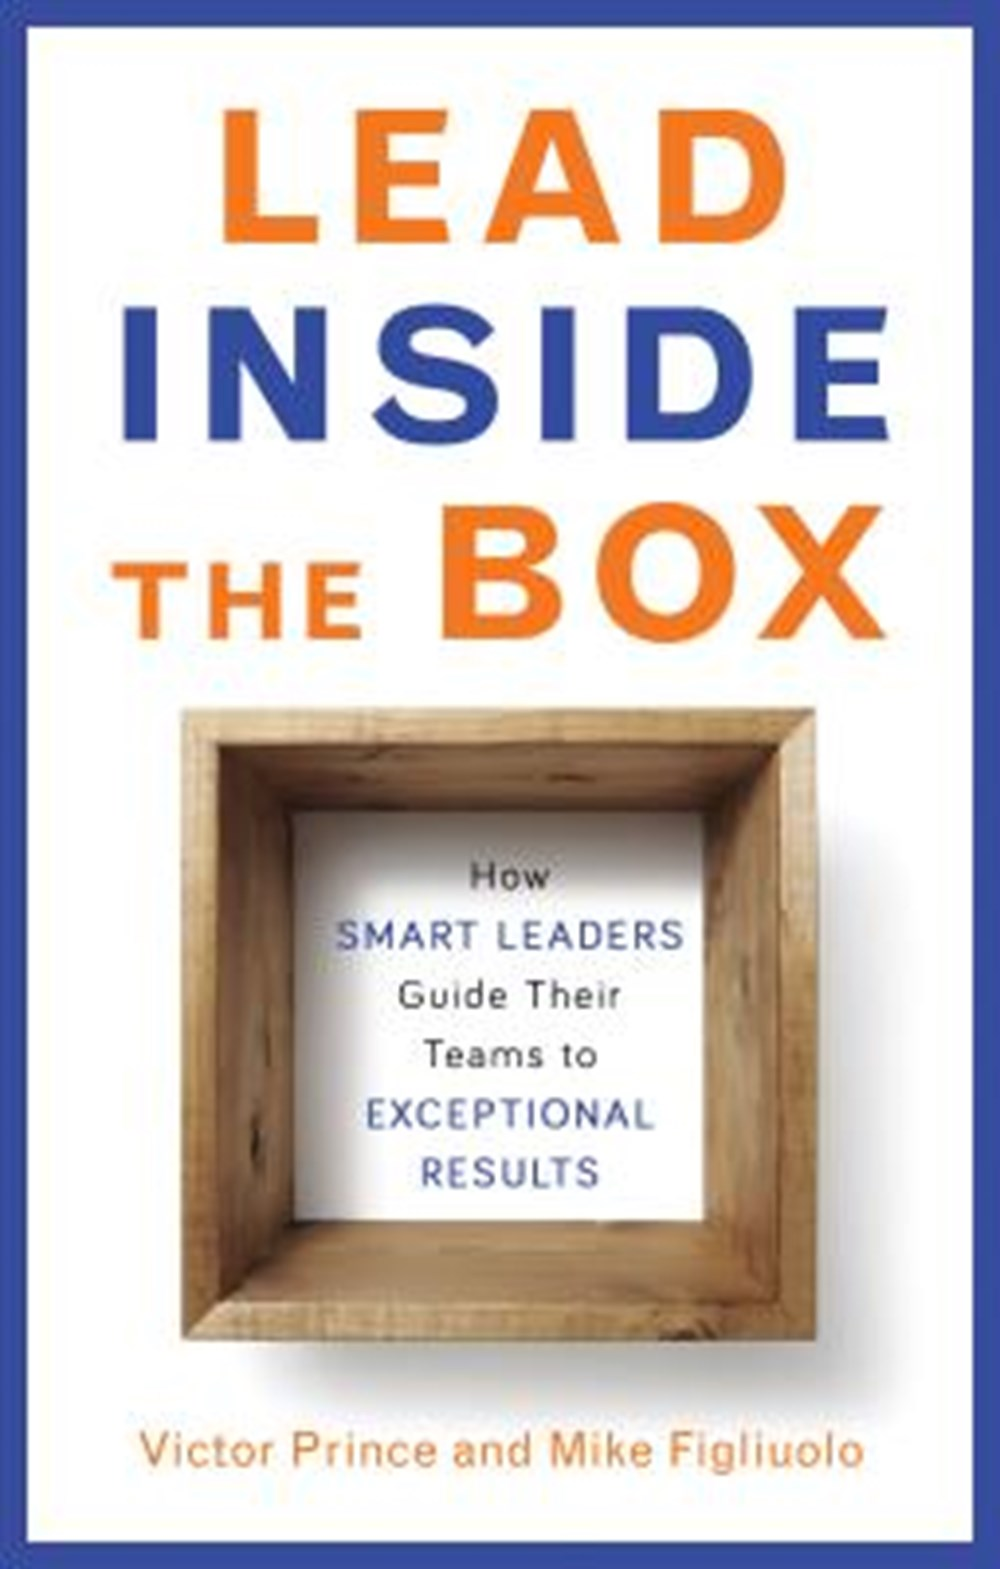 Lead Inside the Box How Smart Leaders Guide Their Teams to Exceptional Results